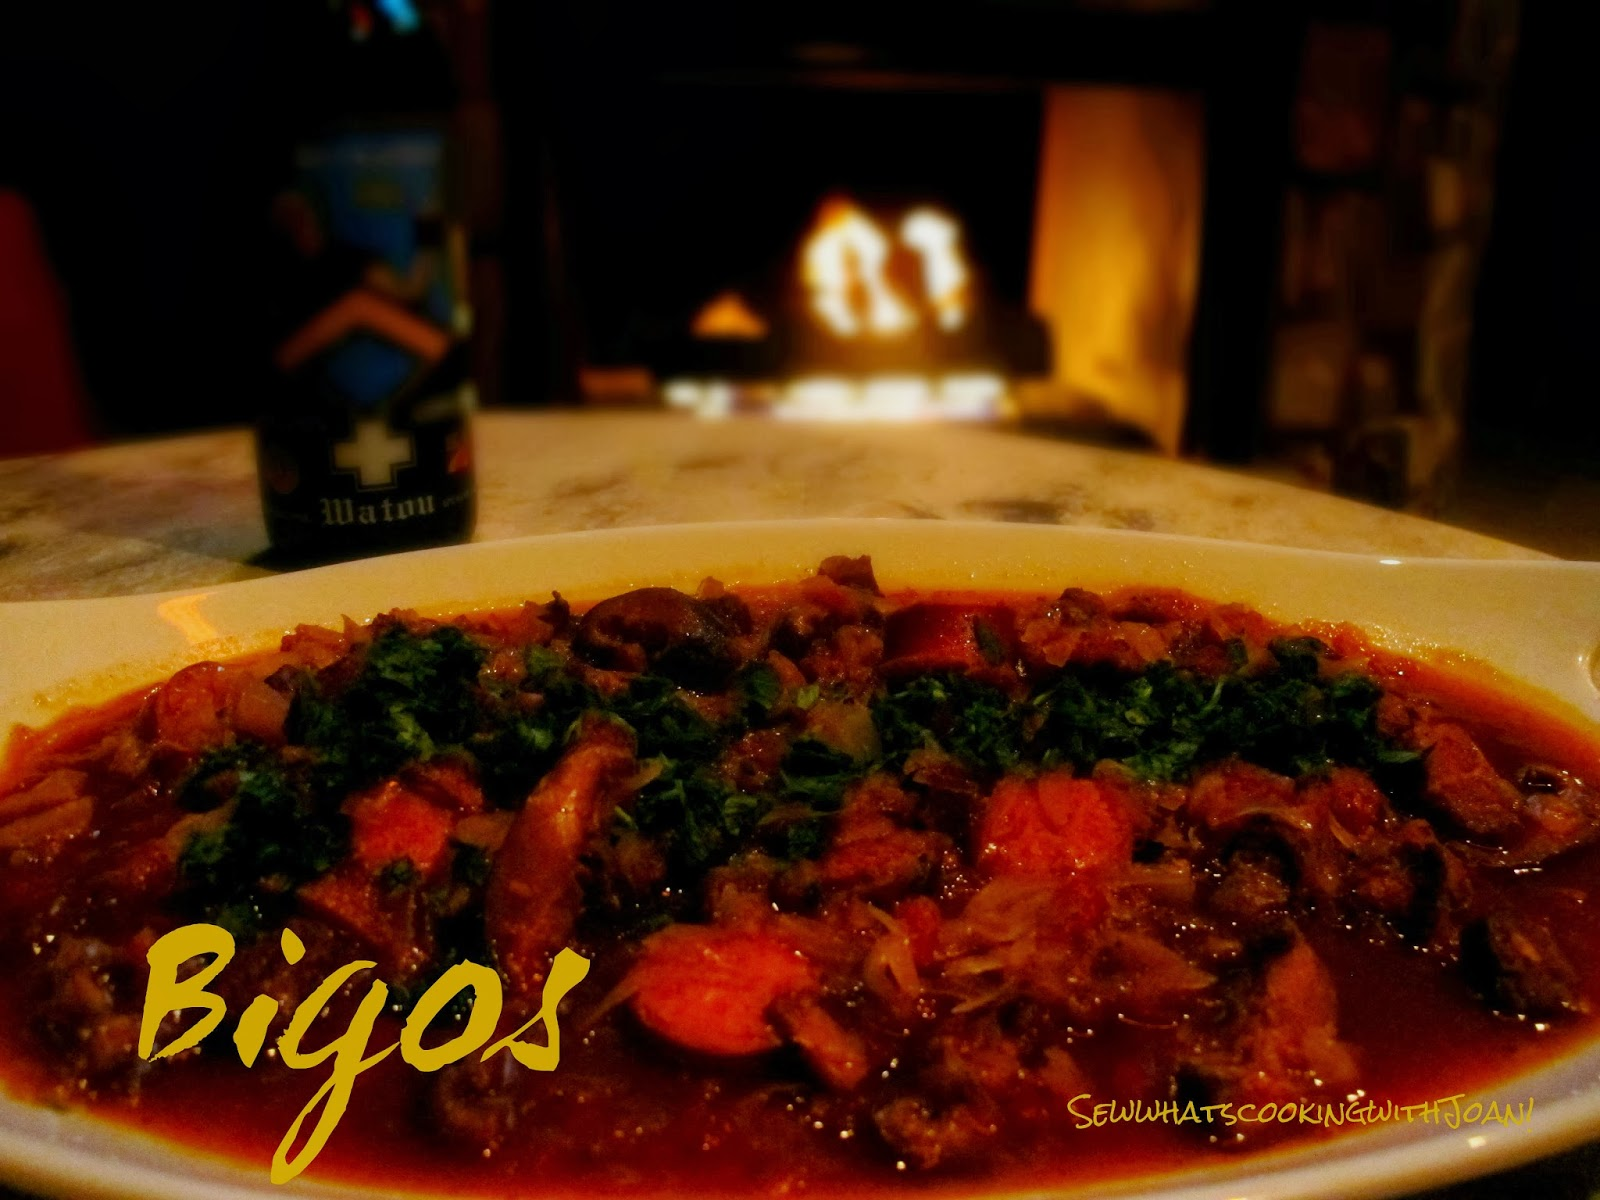 bigos known as a hunter s stew is a traditional meat stew typical of ...